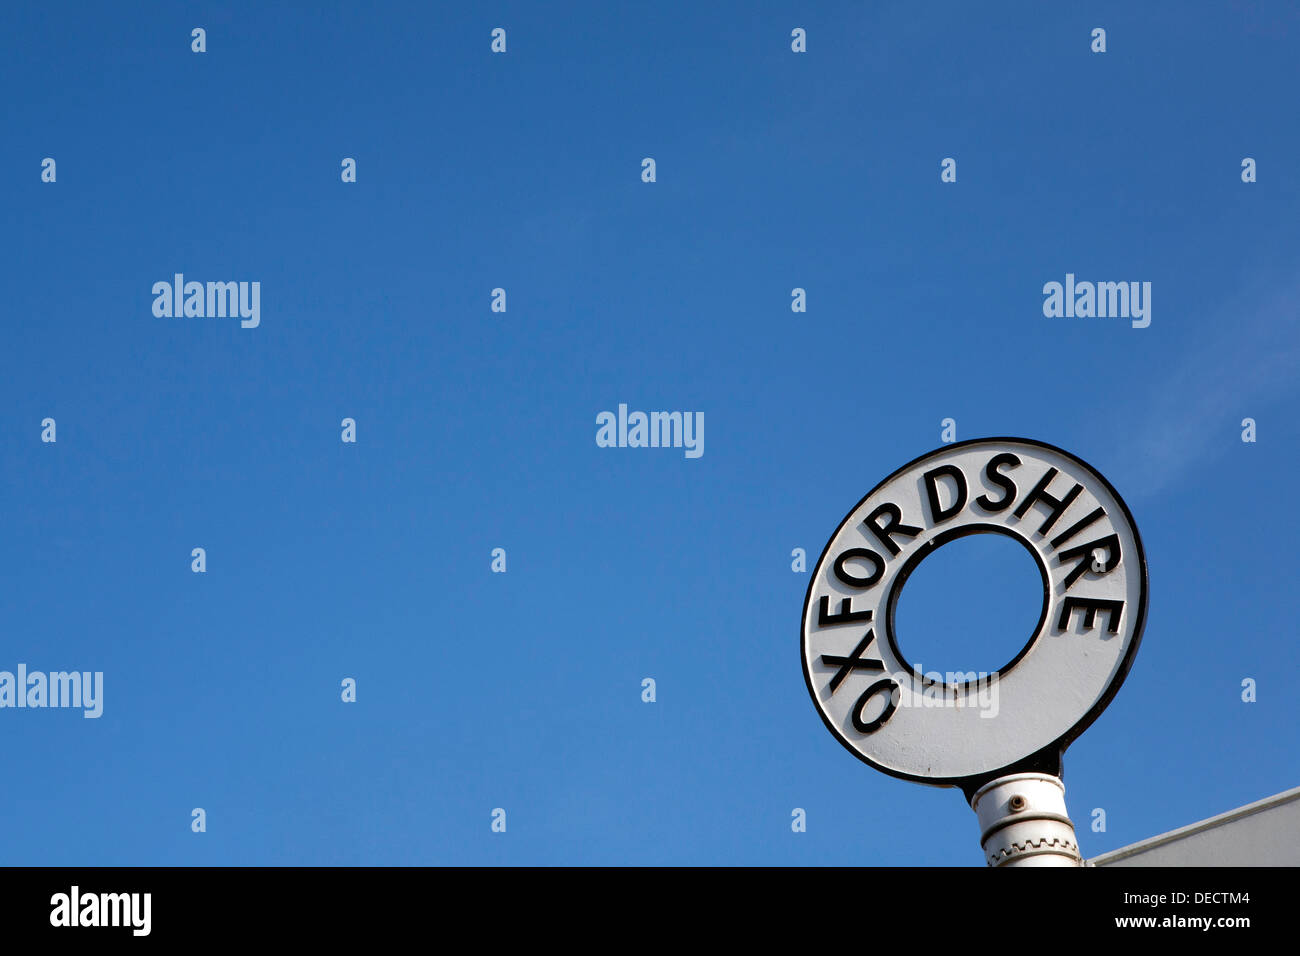 An old Oxfordshire cast iron road sign against a blue sky. - Stock Image